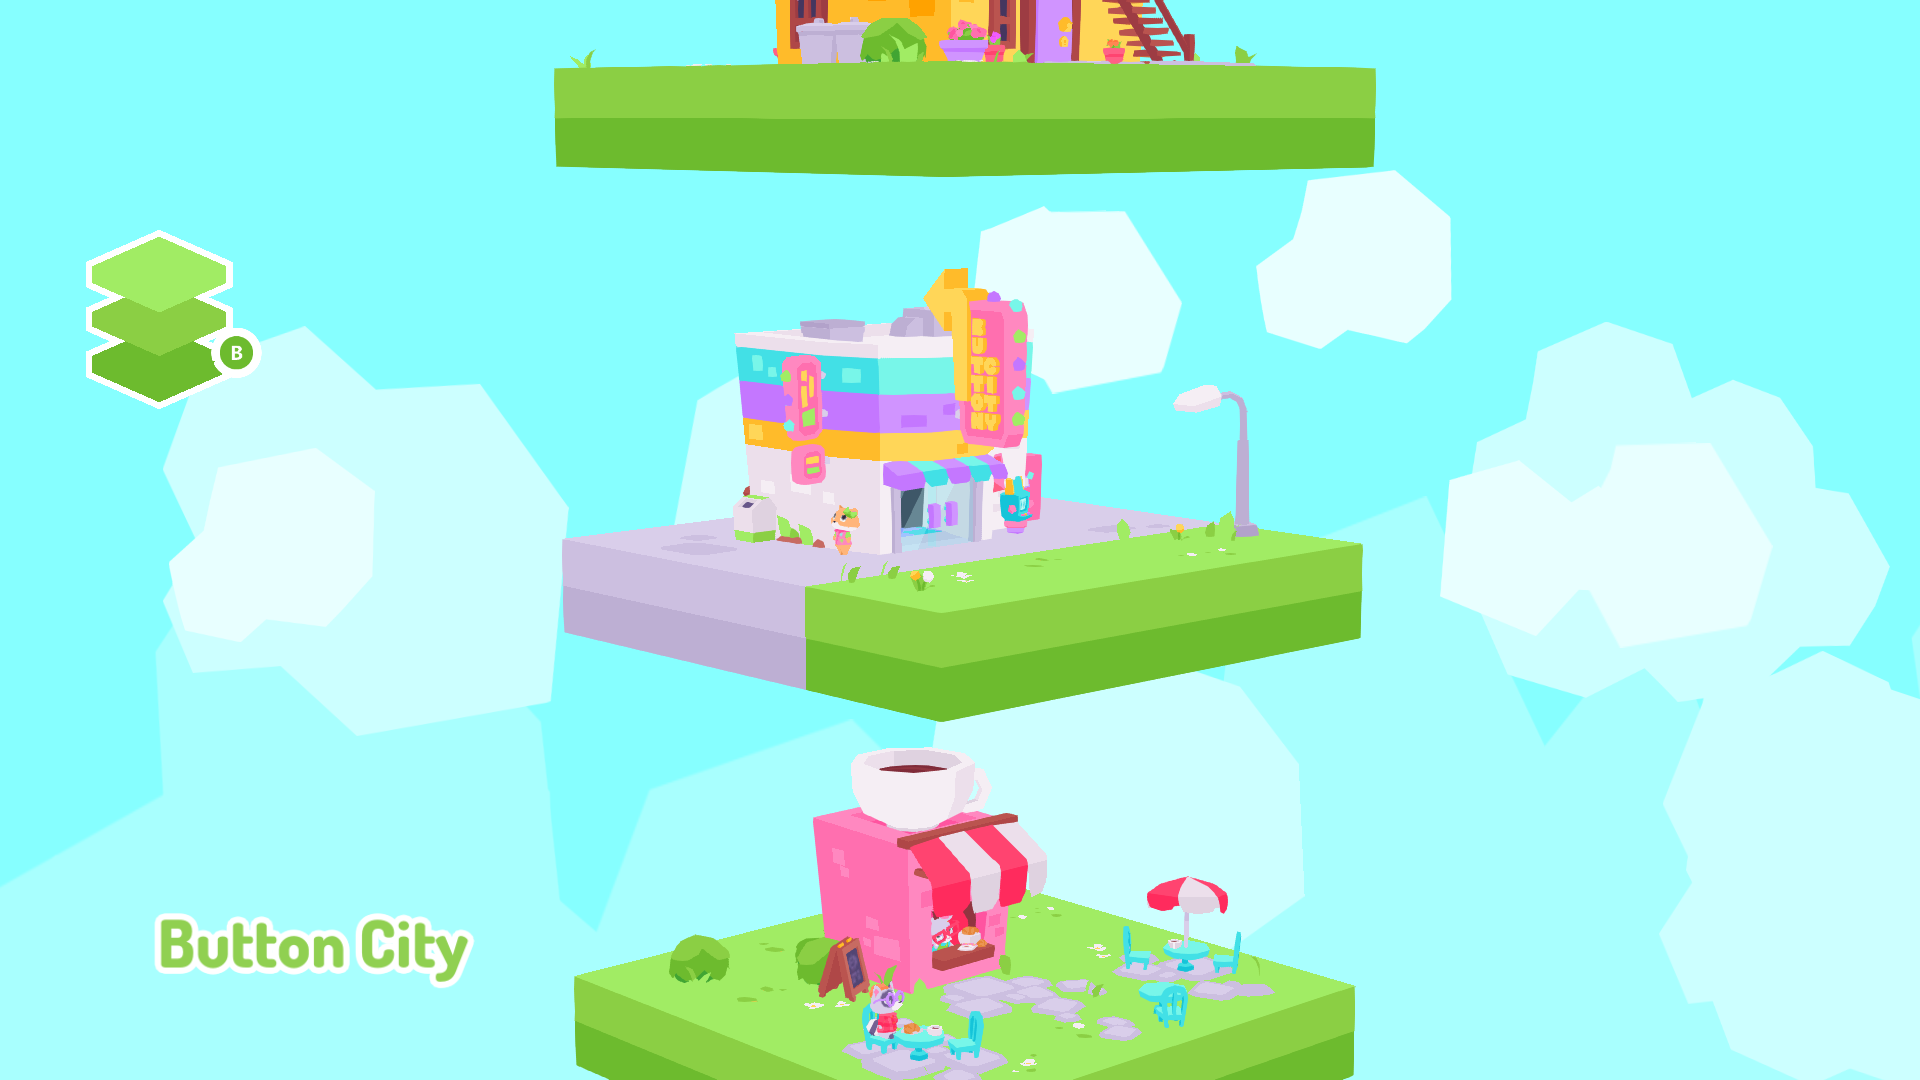 Button City's level select screen